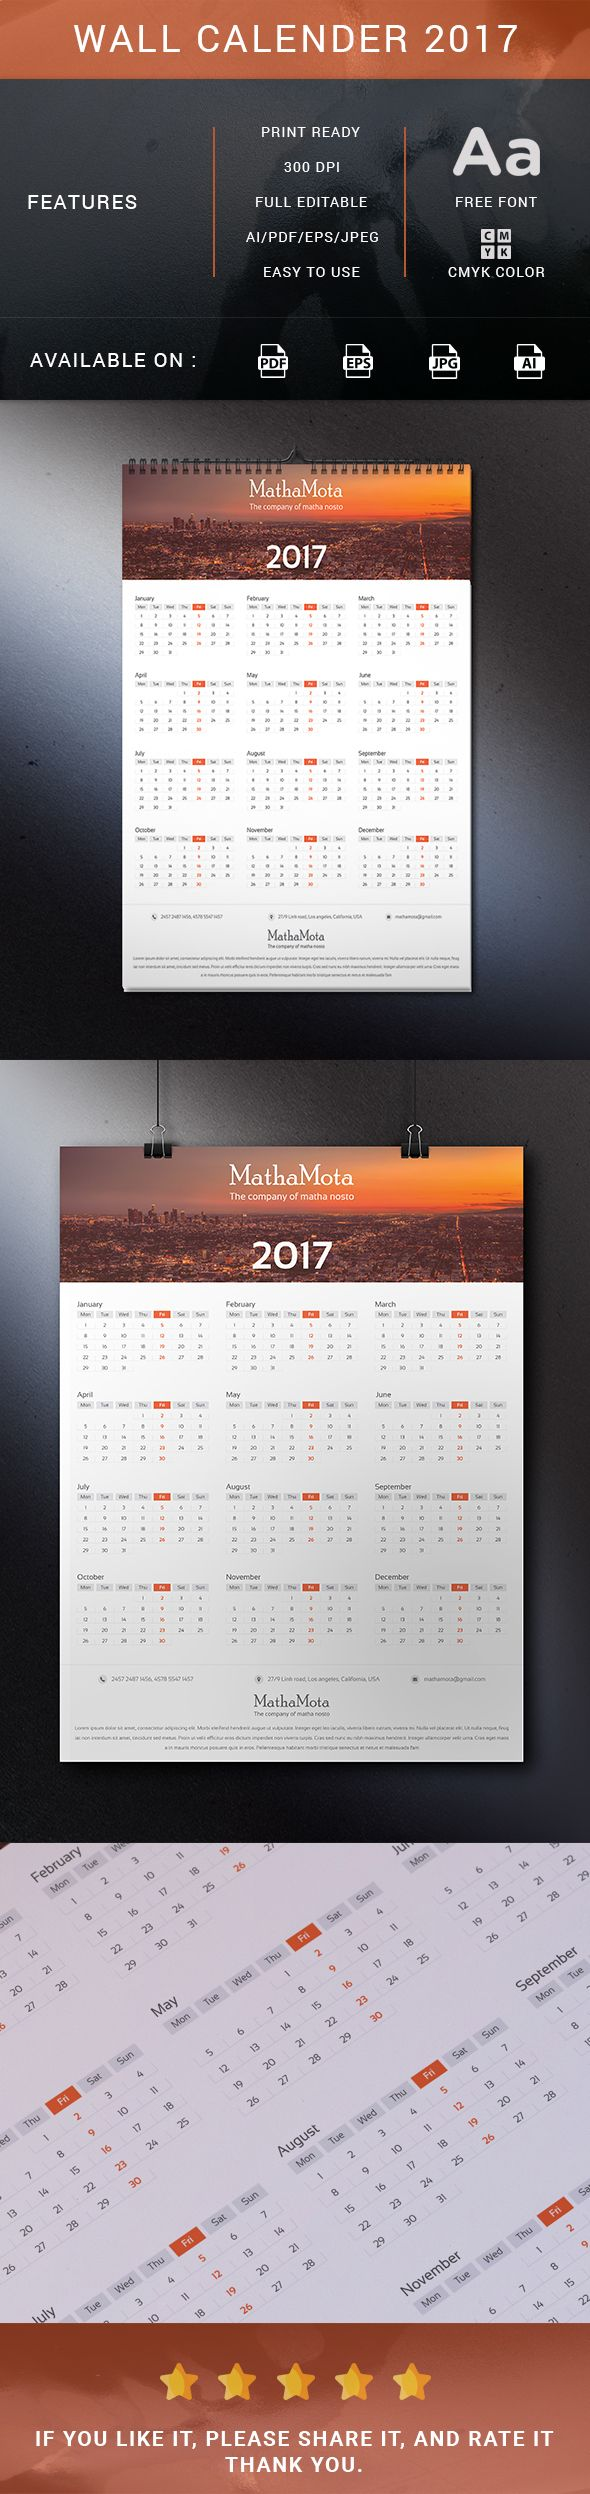 "Check out my @Behance project: ""Wall calender 2017"" https://www.behance.net/gallery/46016379/Wall-calender-2017"